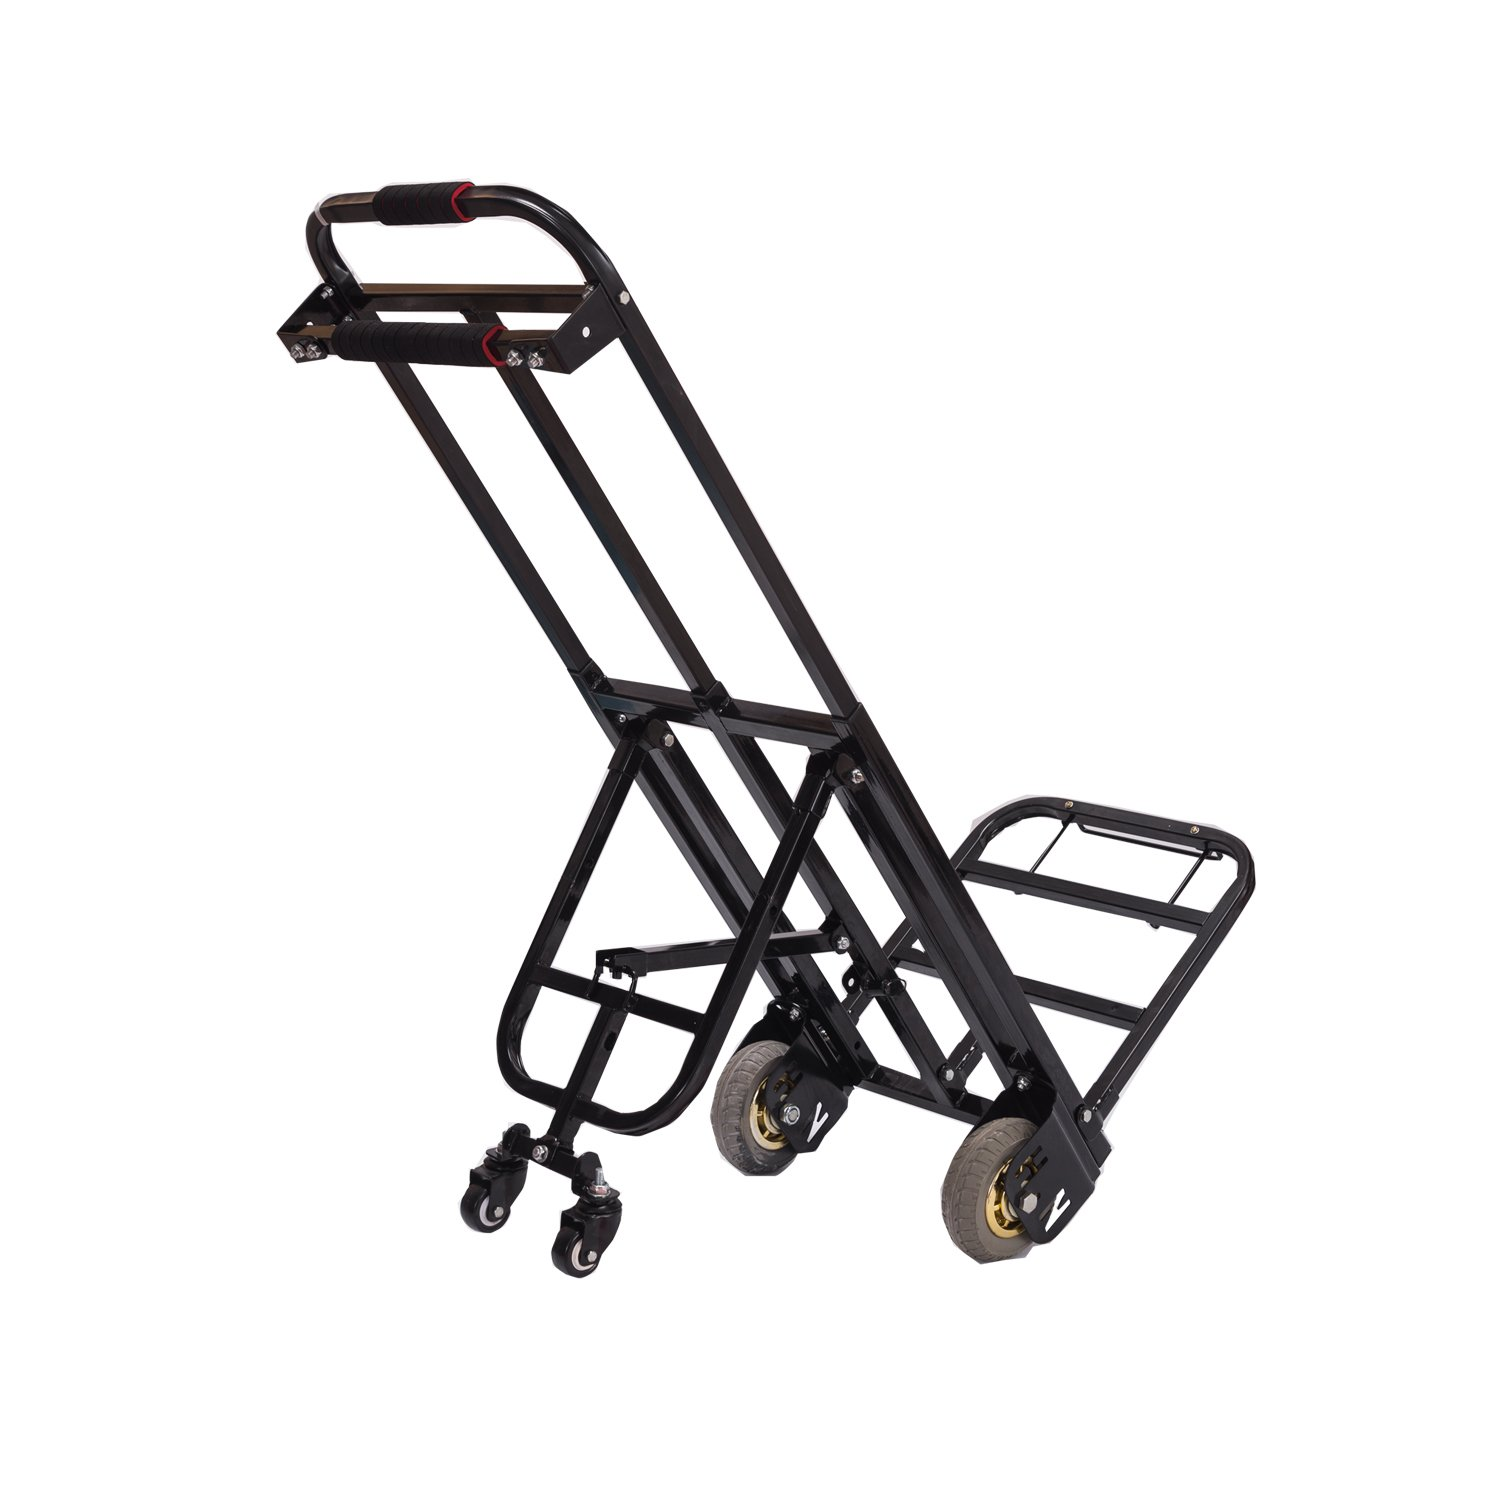 Mecete Hand Truck Dolly 460lb Largest Capacity All Terrain Hand Truck Heavy Duty with 2 Solid Rubber wheels and Universal wheels Baking Varnish Surface Shining